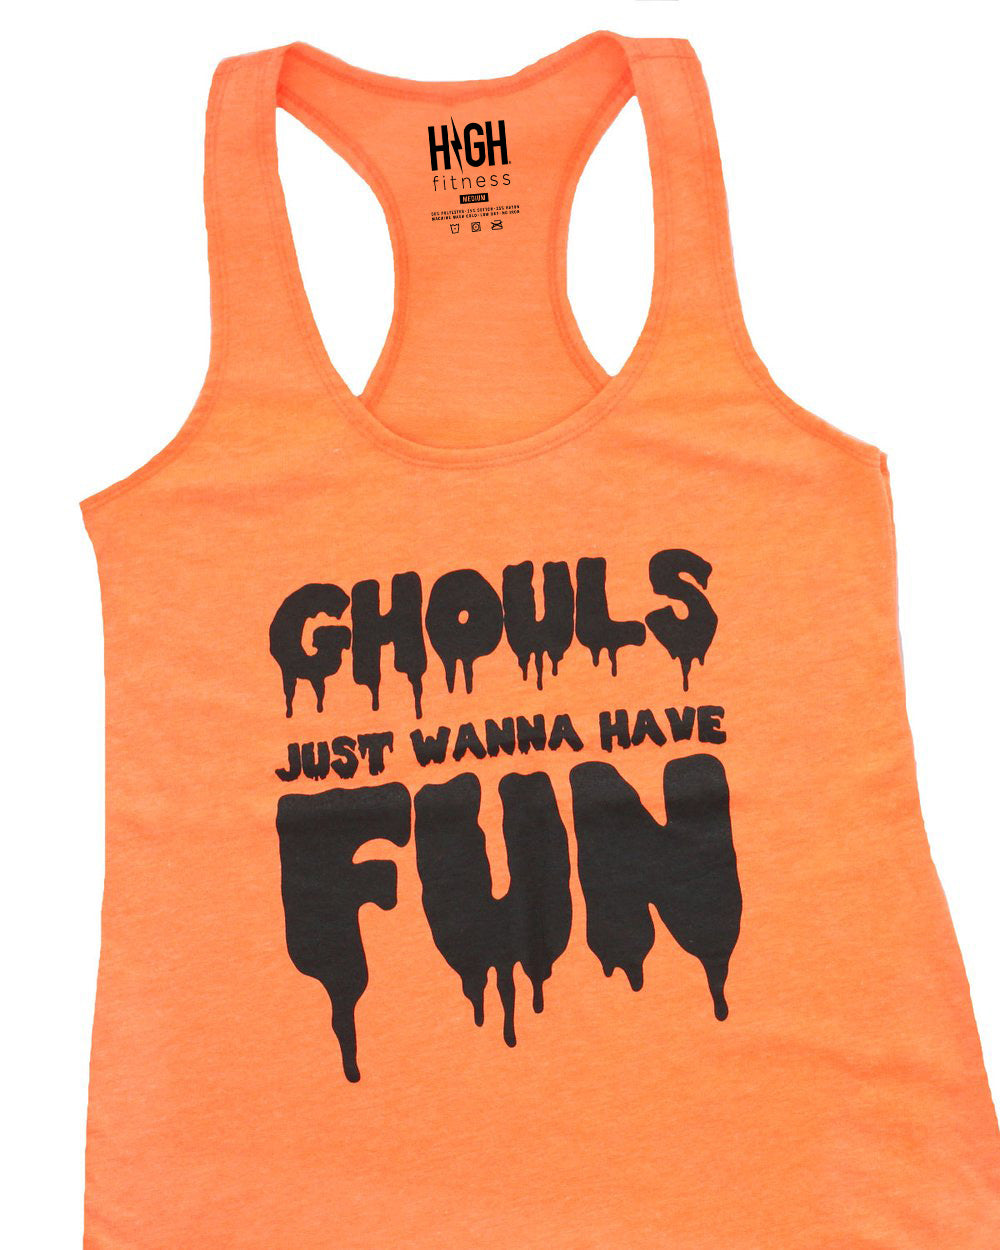 Ghouls Just Want to Have Fun Tank